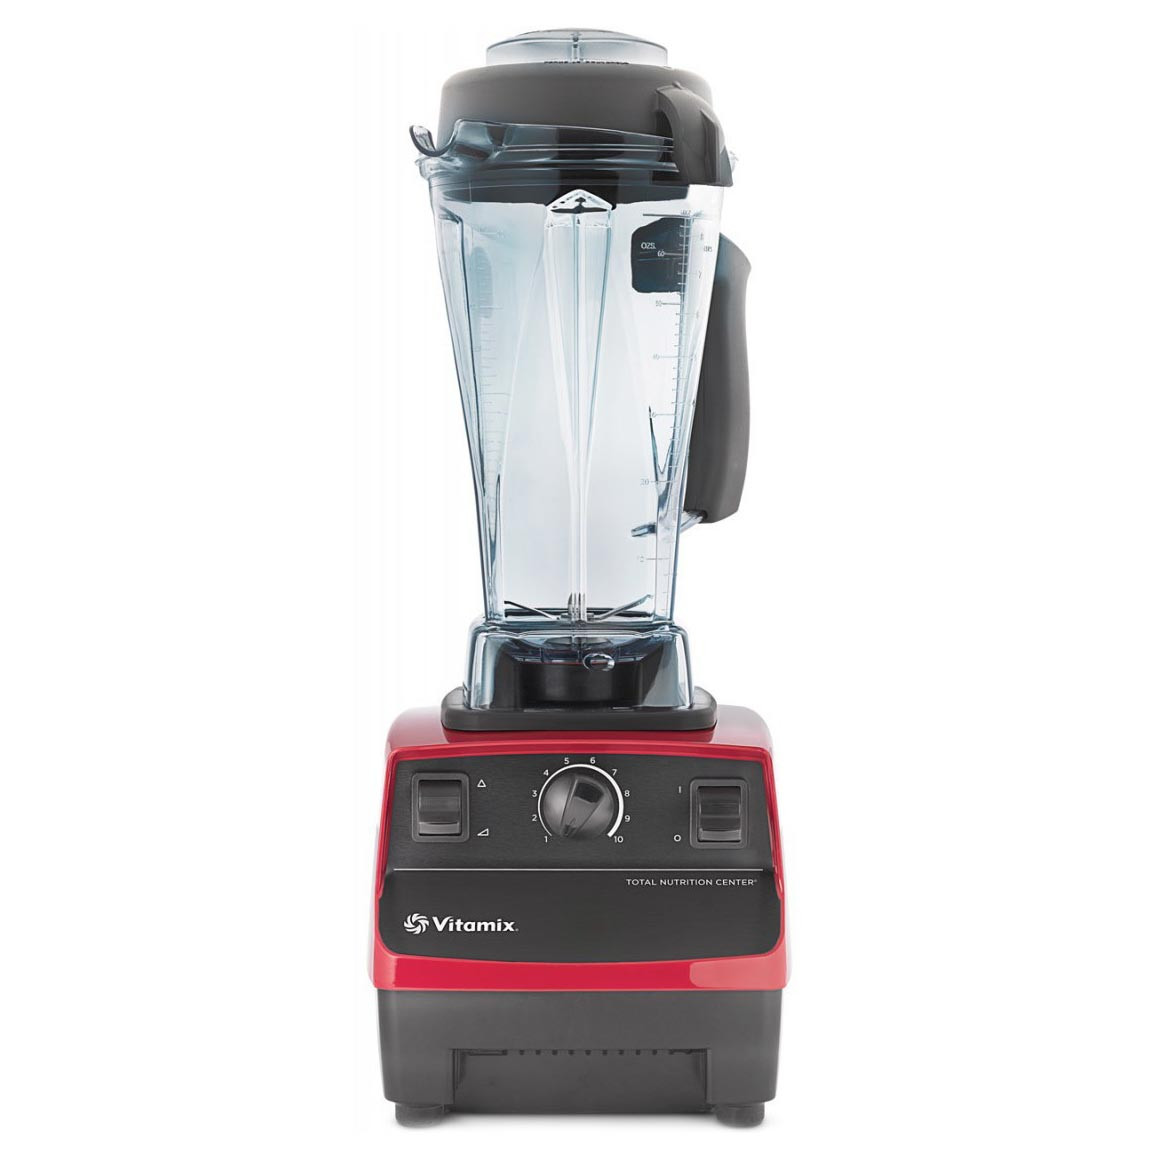 Vitamix Tnc Blender Ireland Vita Mix Total Nutrition Centre In White Black Red And